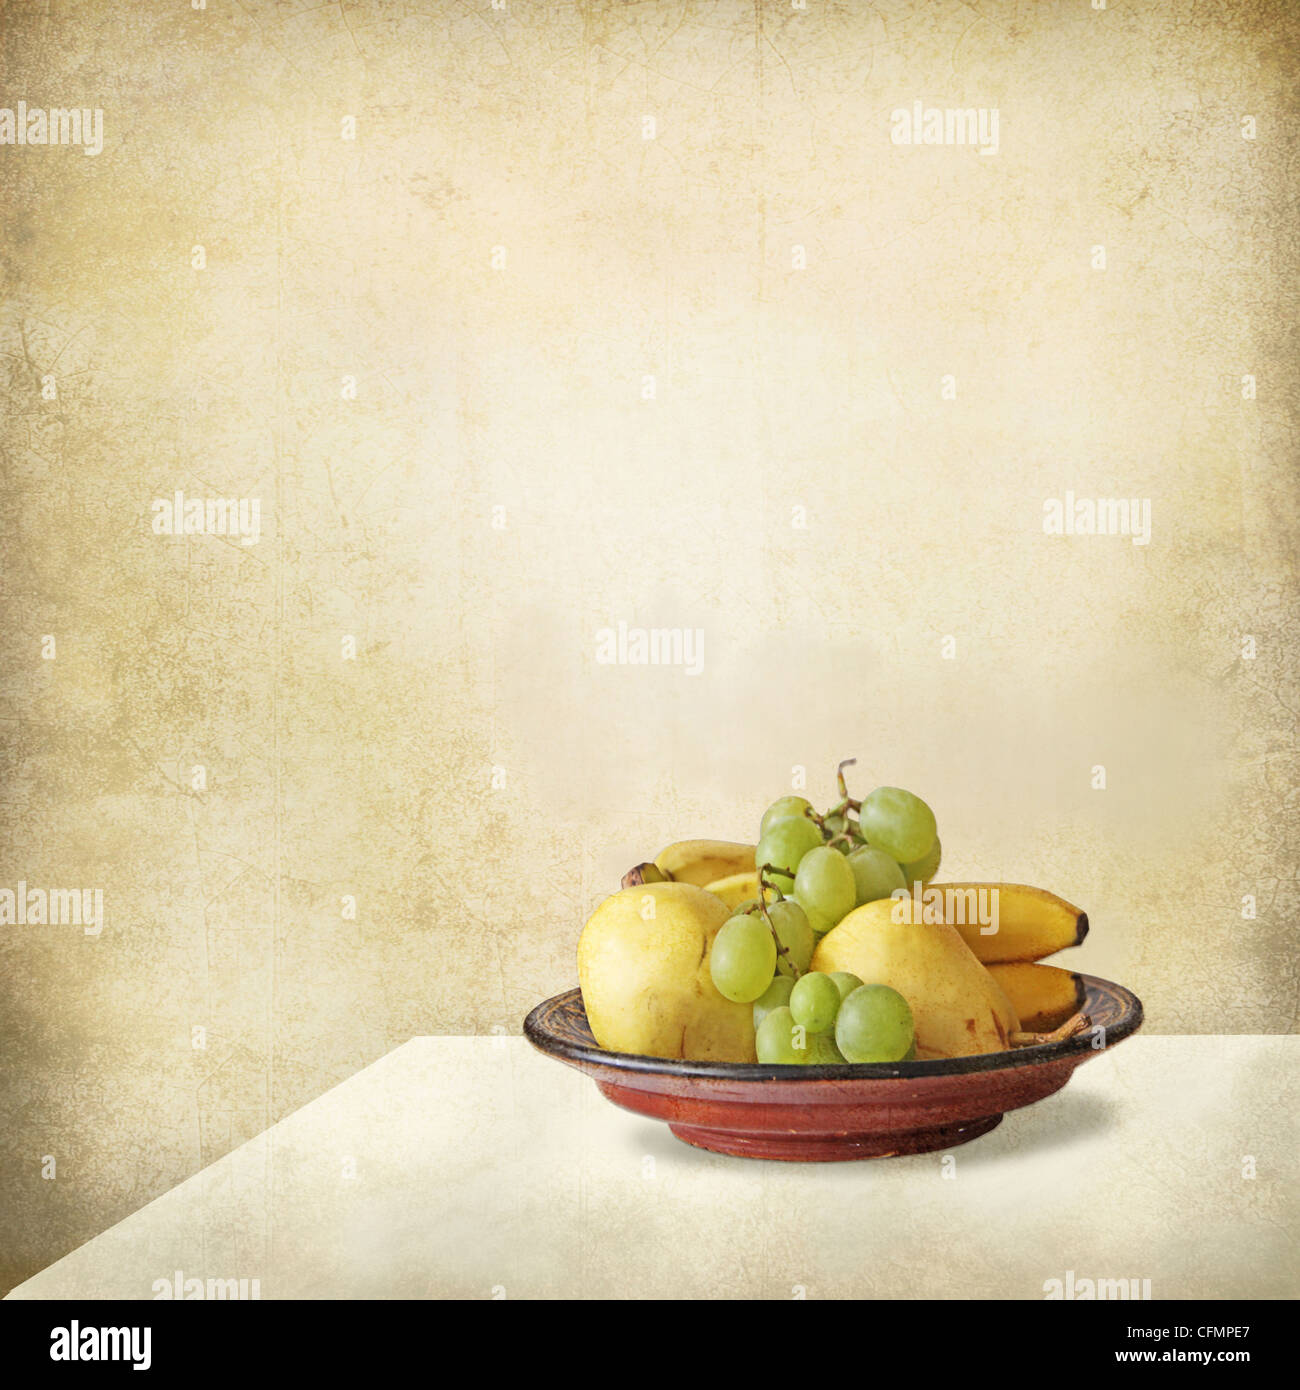 Grunge still life of a light interior, a table and a  tray full of fruits, grapes, bananas, pears. Stock Photo